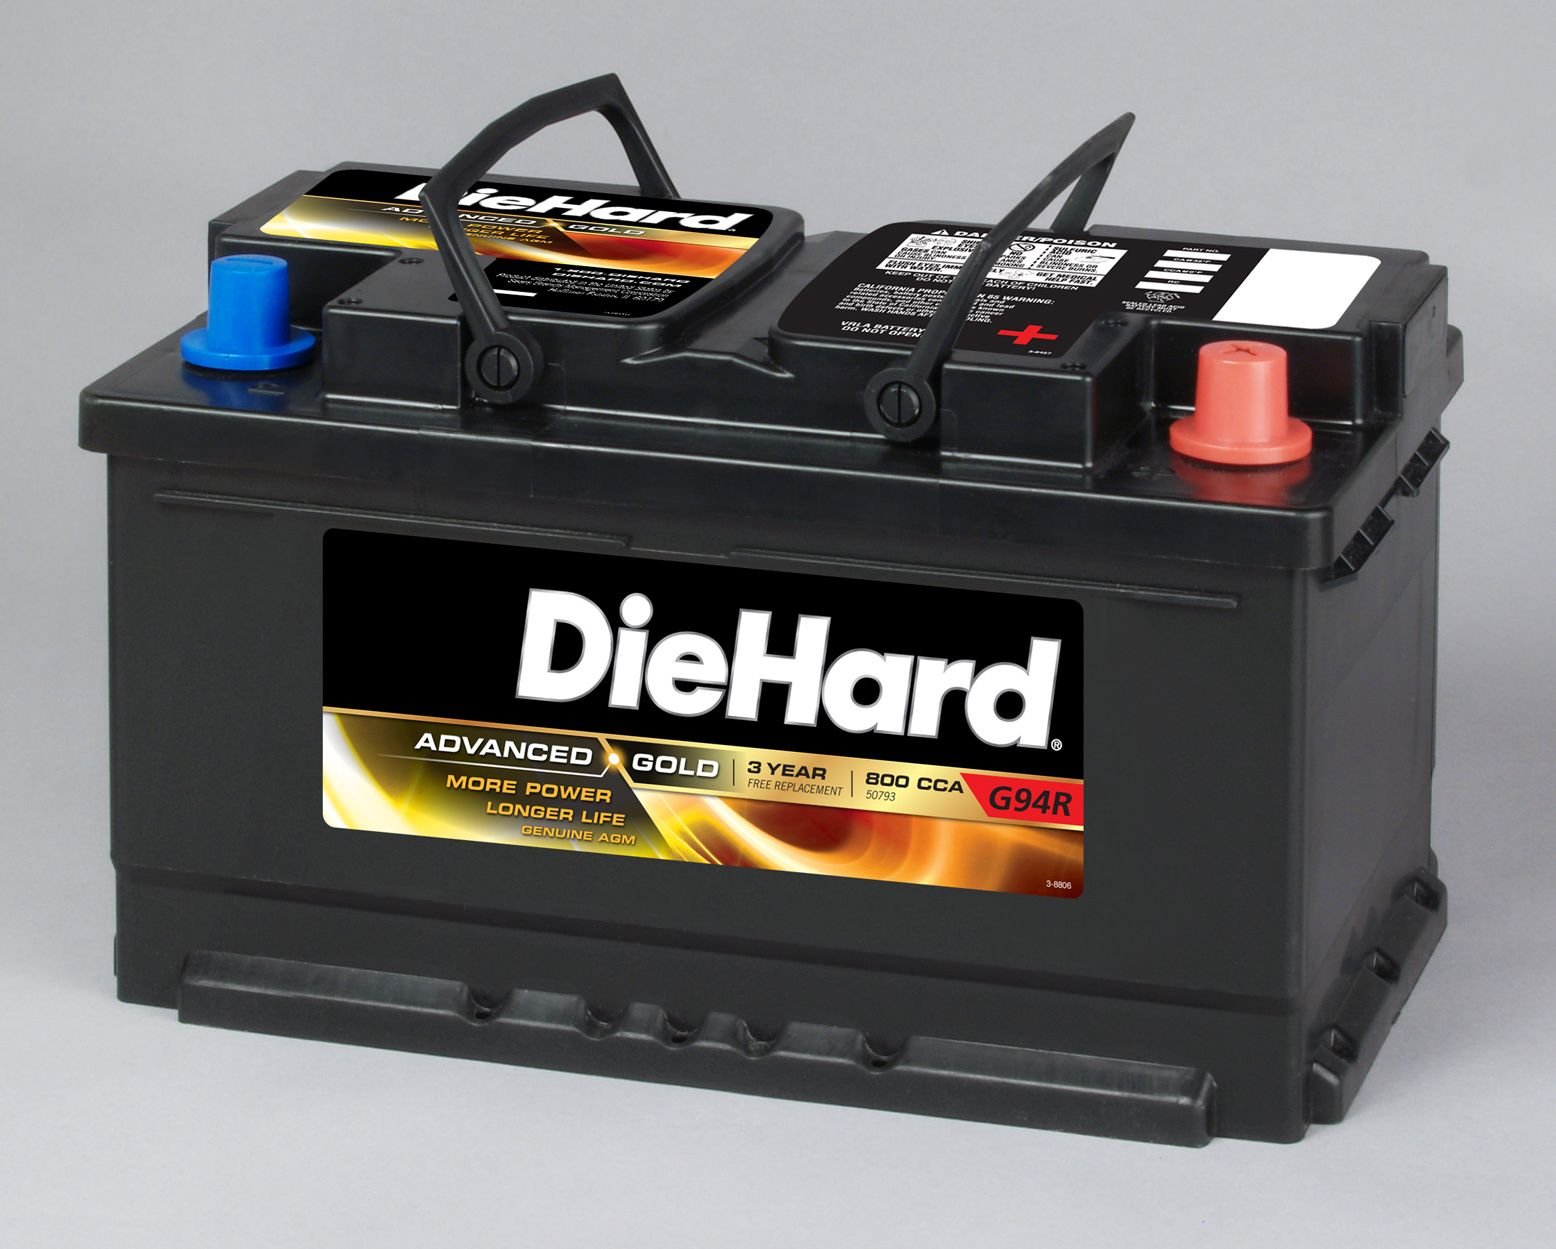 diehard gold agm automotive battery group size ep 94r price with exchange  [ 1556 x 1249 Pixel ]